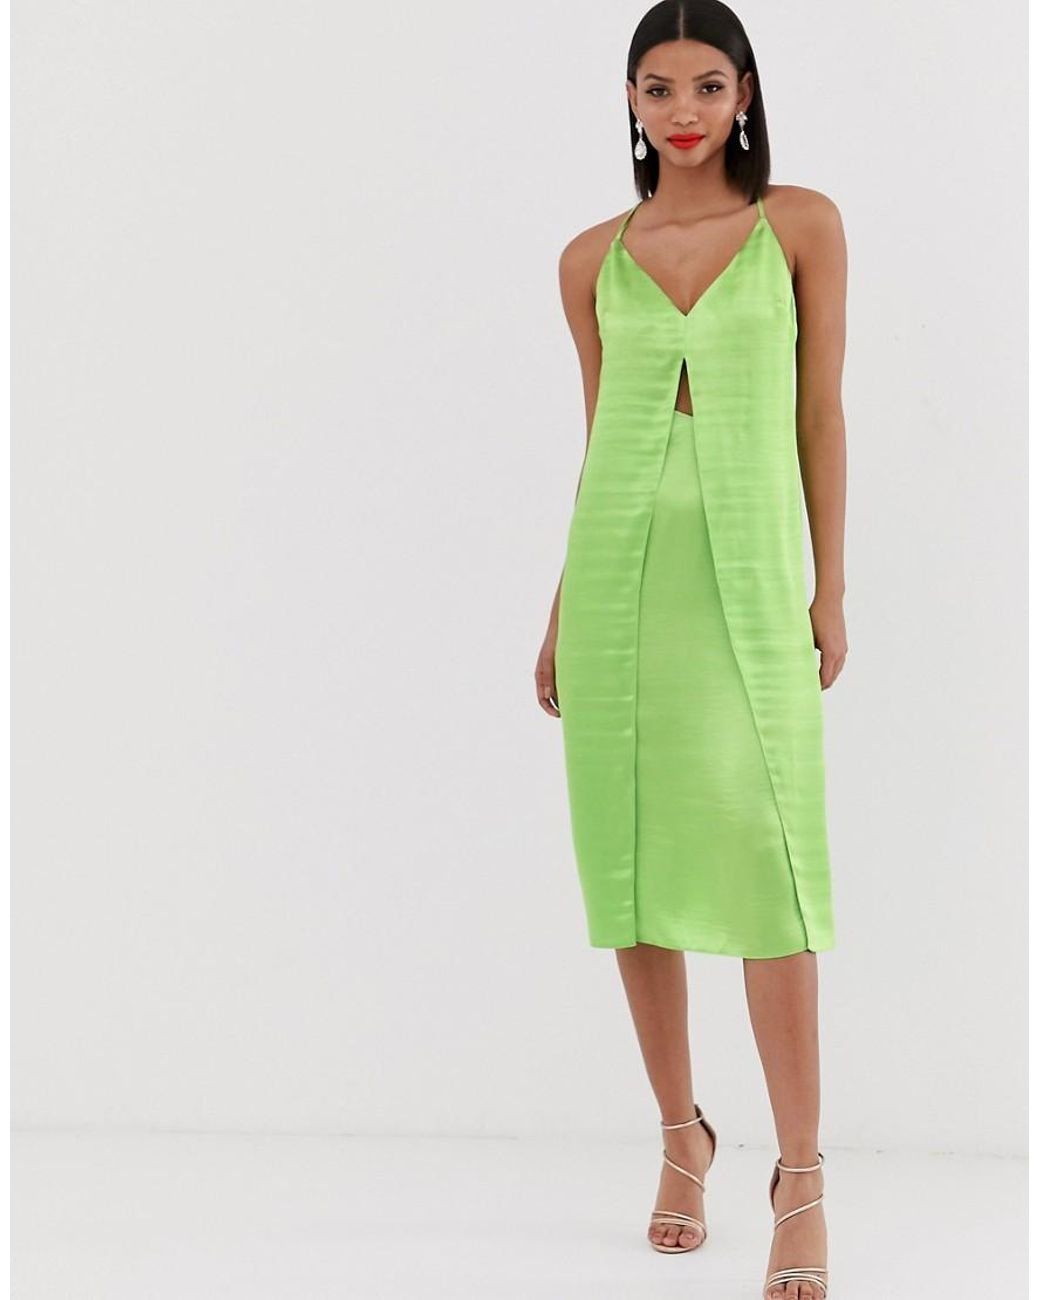 cc7cc7179a756 ASOS Cami Midi Slip Dress With Cut Out With High Shine Satin in Green - Lyst